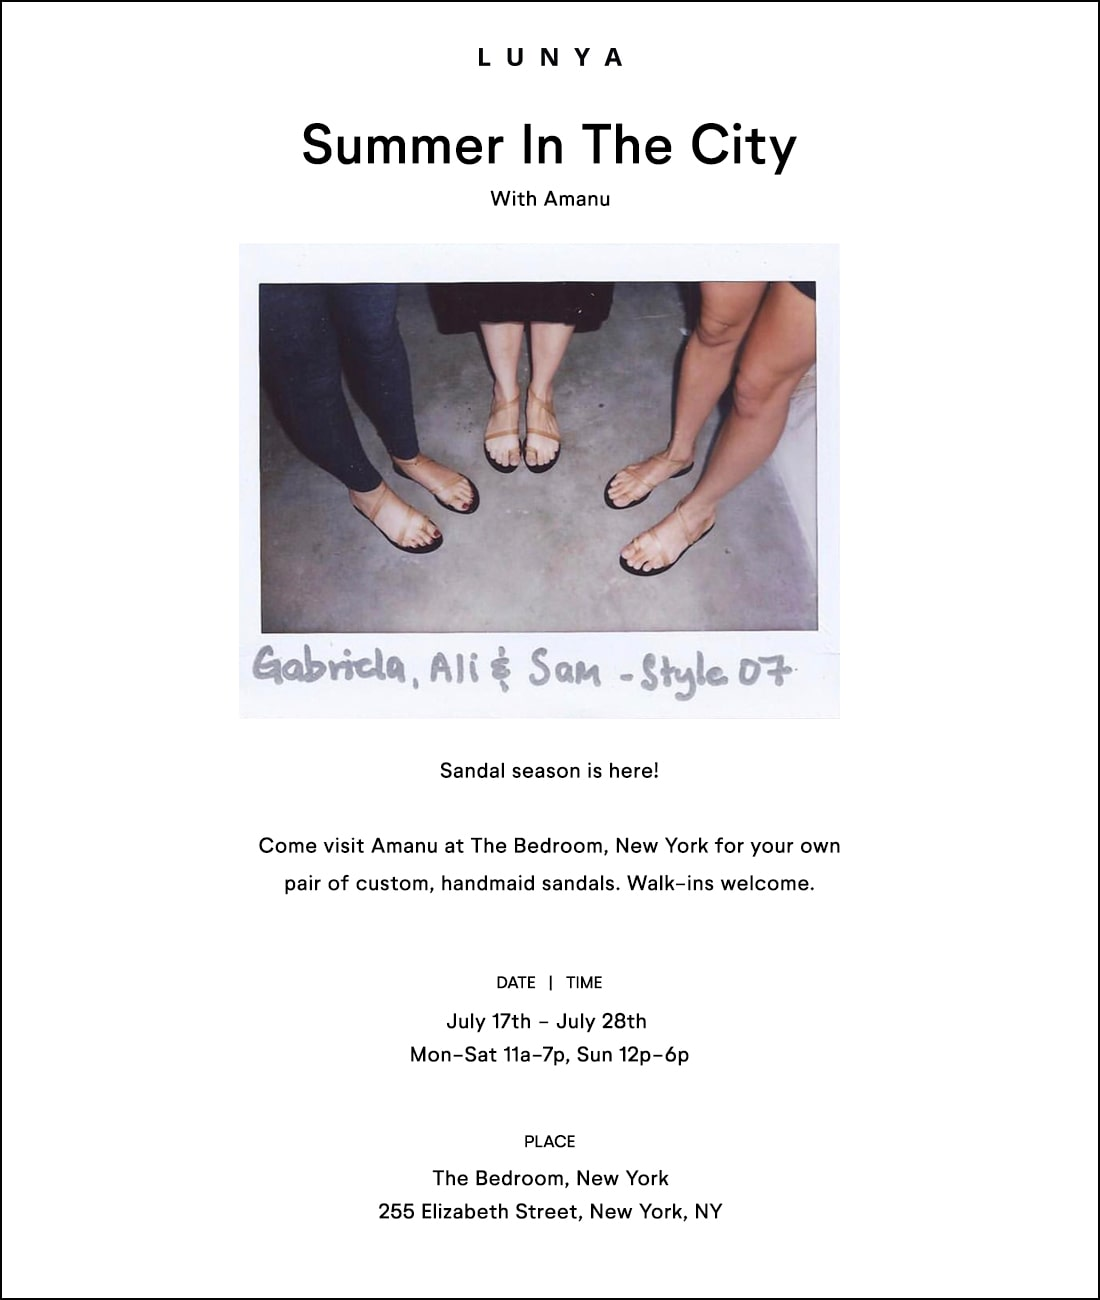 Lunya x Amanu: Summer in the City